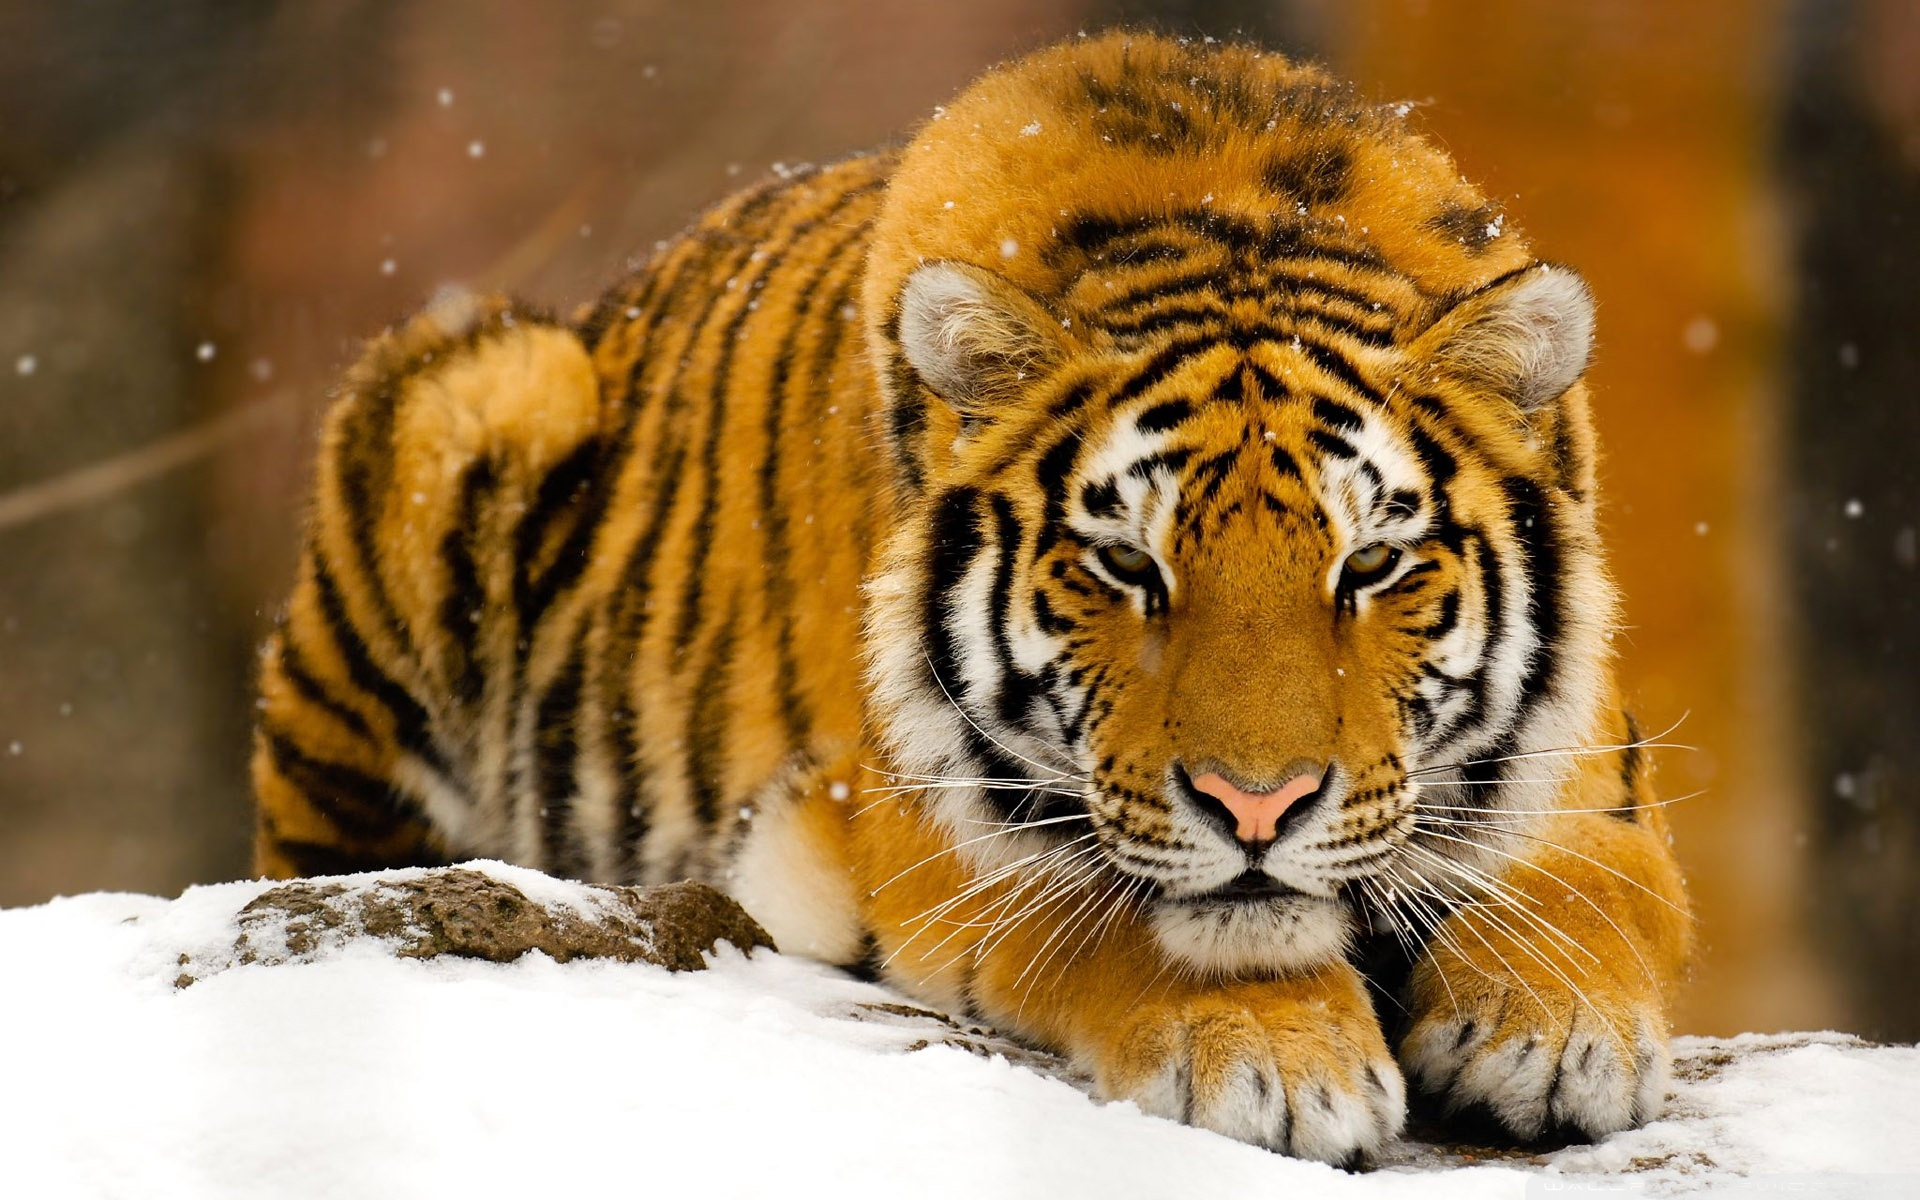 siberian_tiger_in_snow-wallpaper-1920x1200